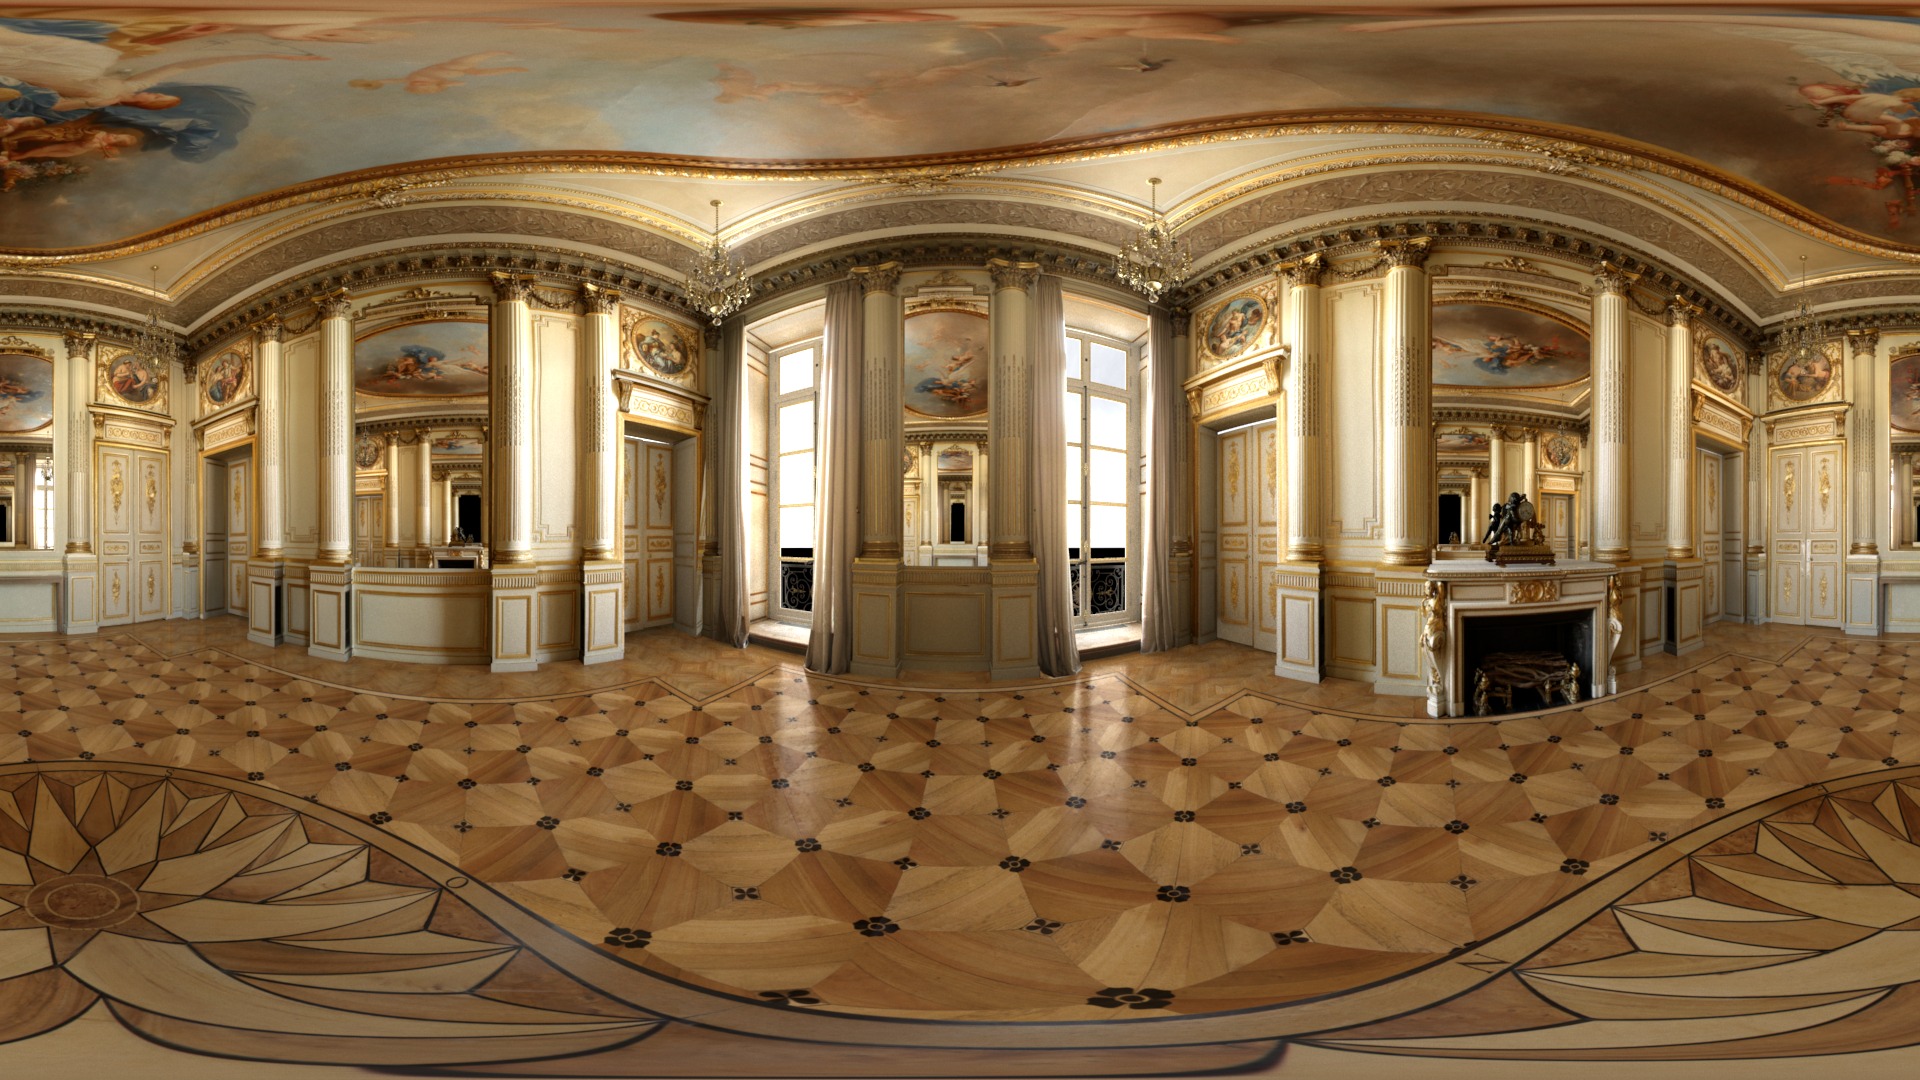 360 Render of the Salon Chaumet